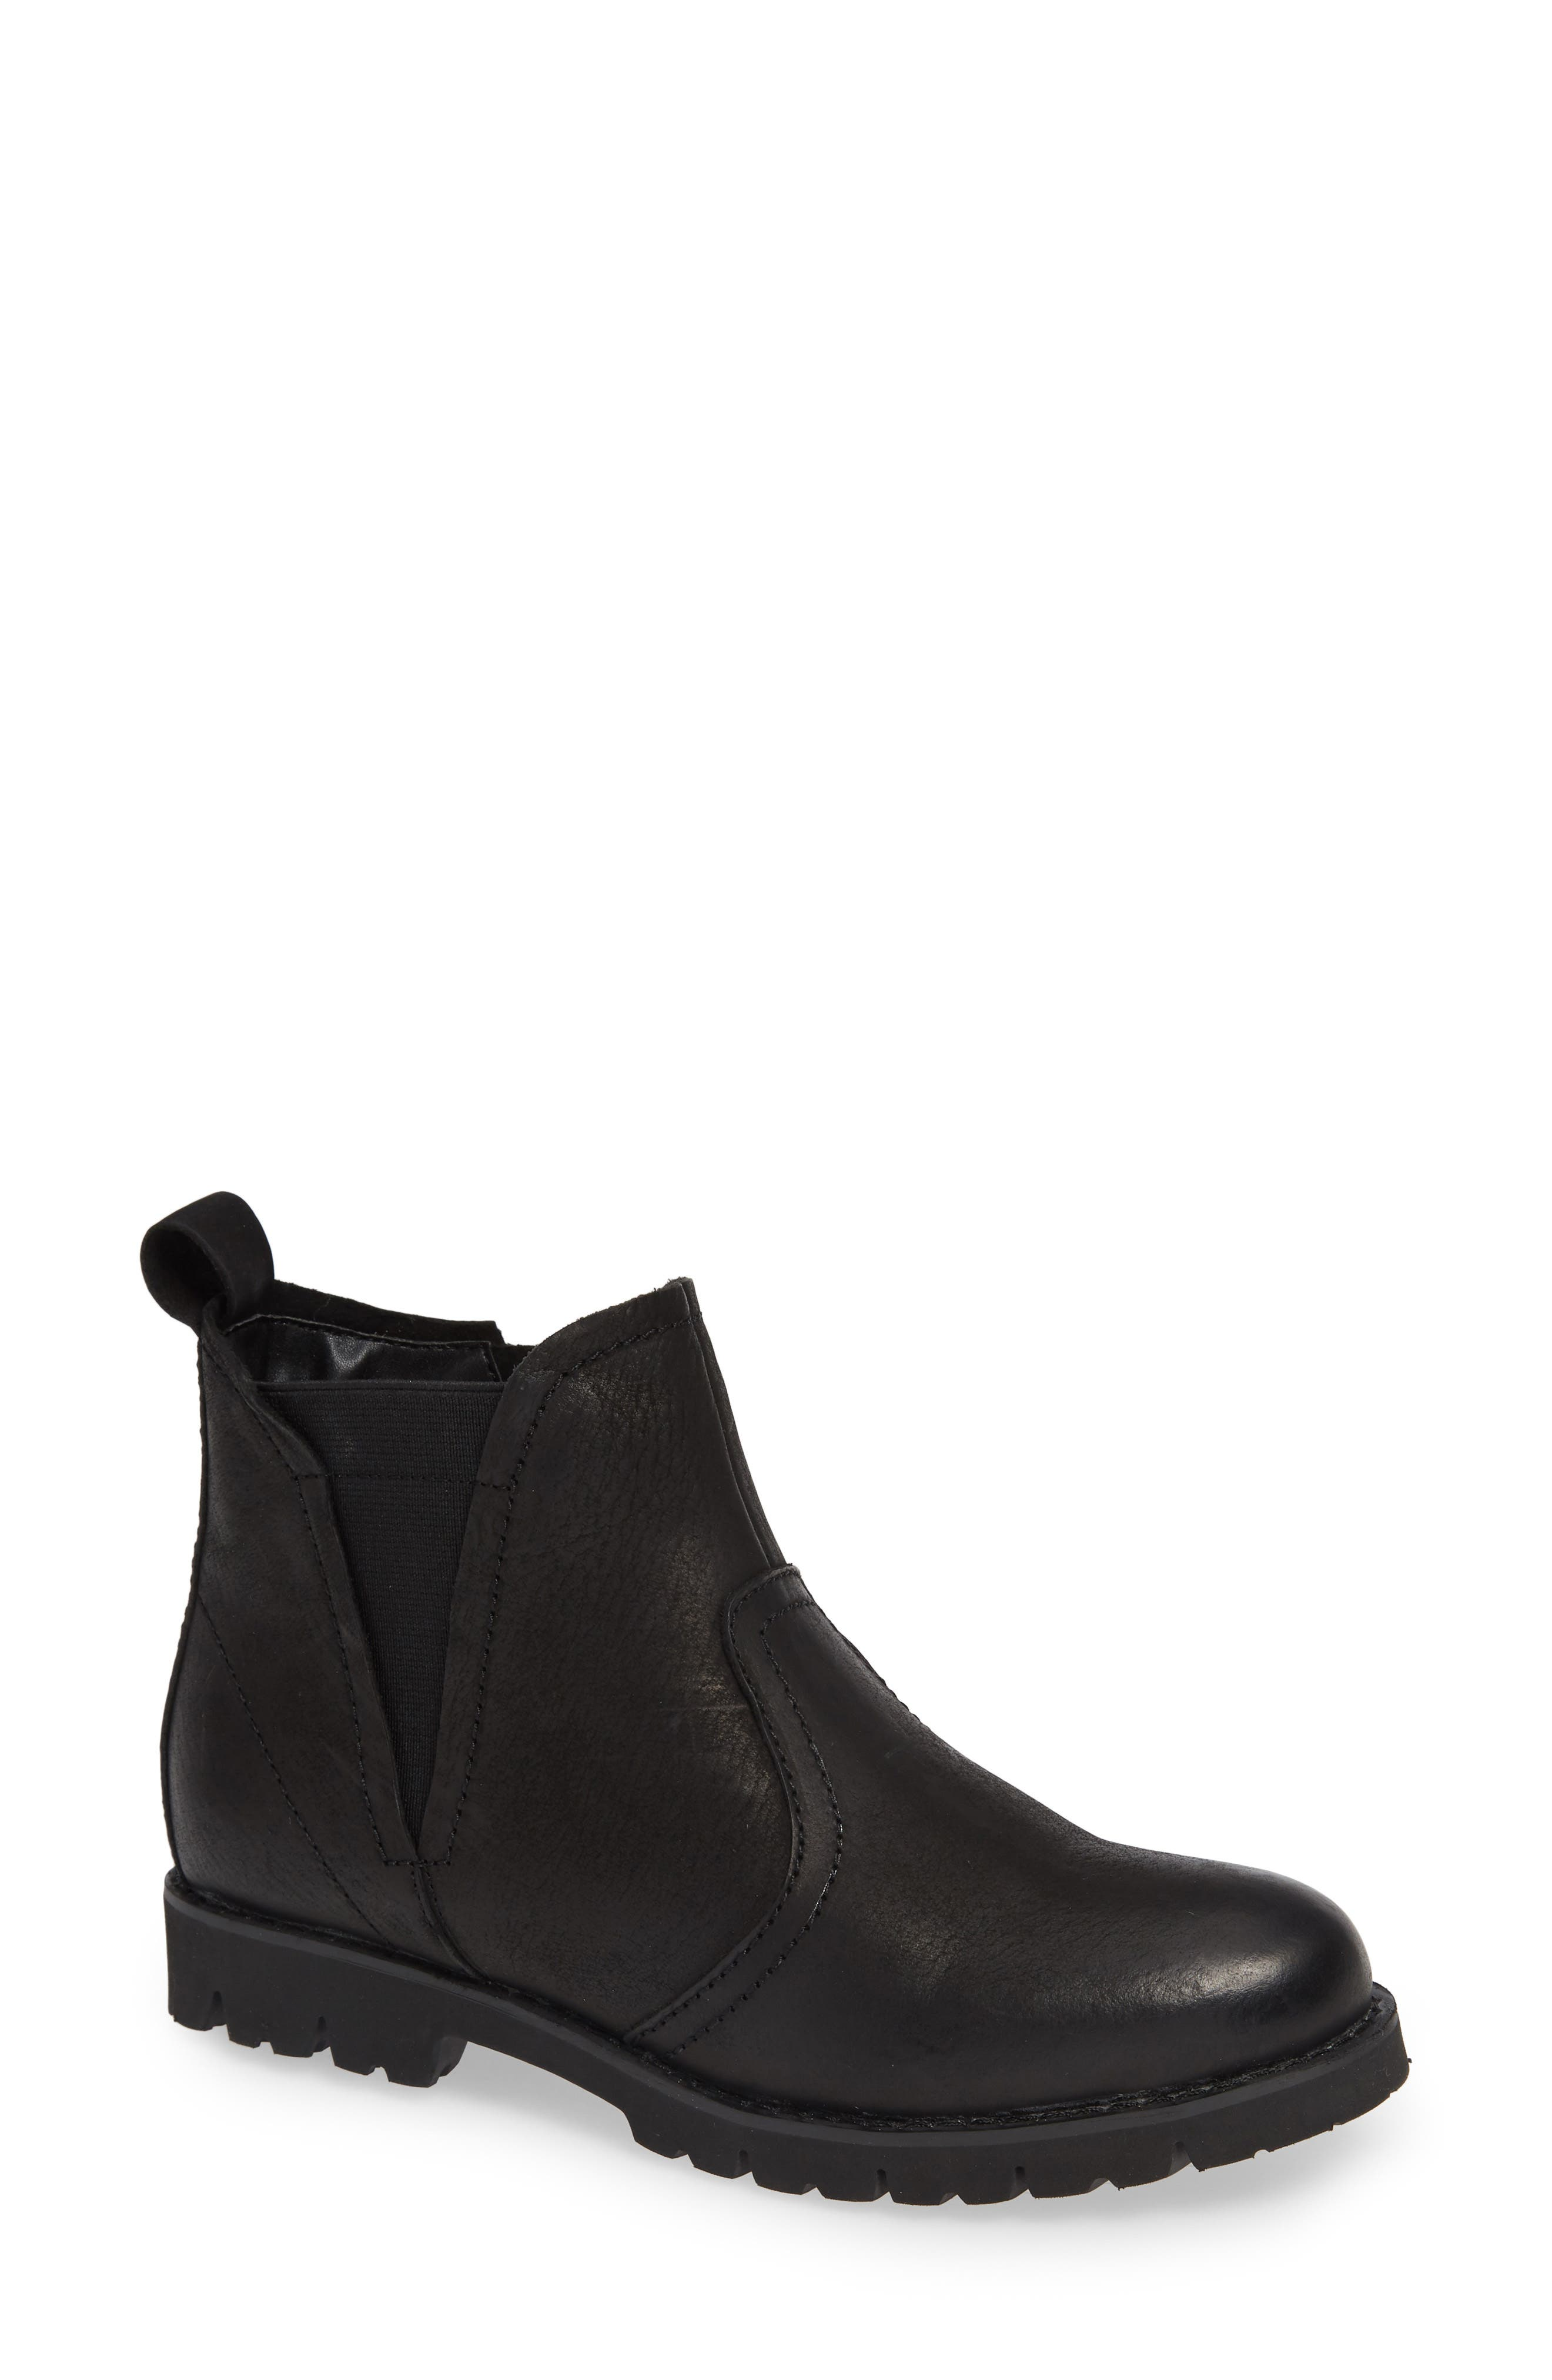 David Tate Reserve Lugged Bootie- Black